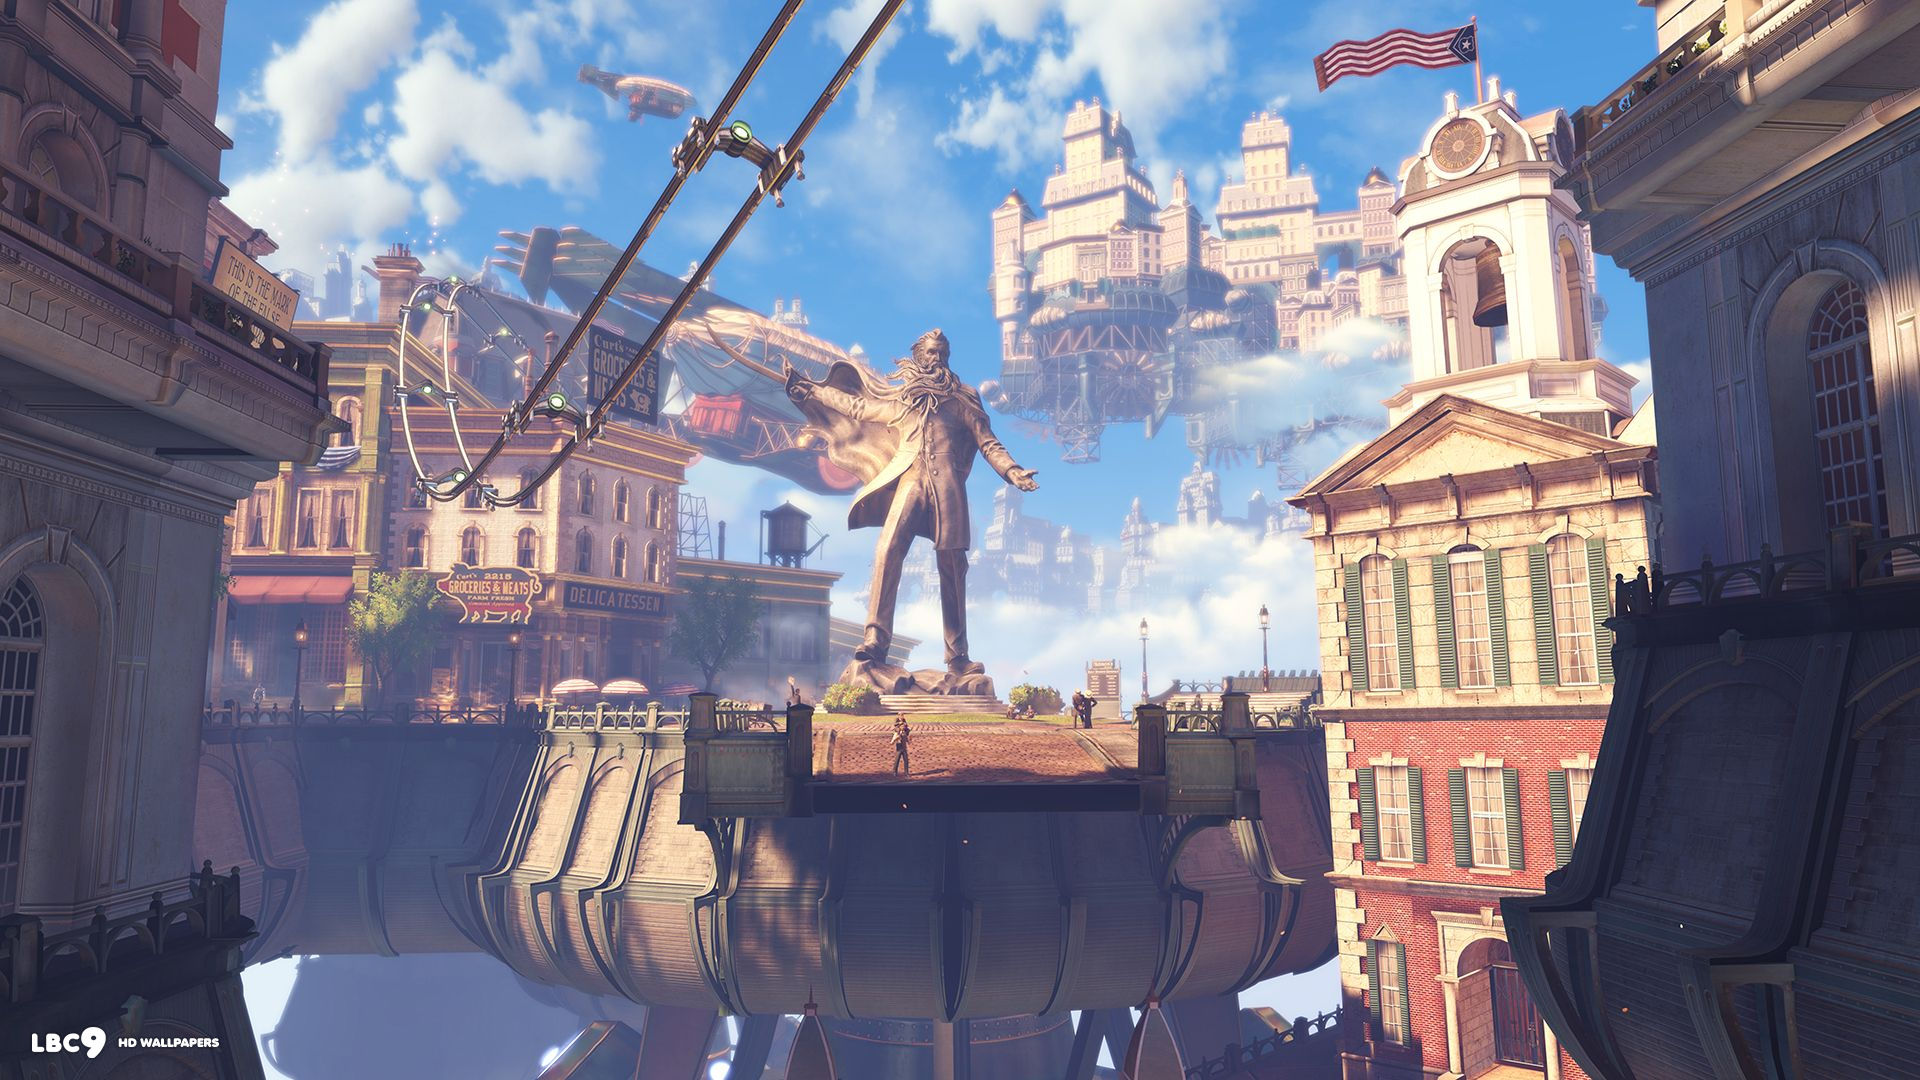 video game bioshock infinite city columbia